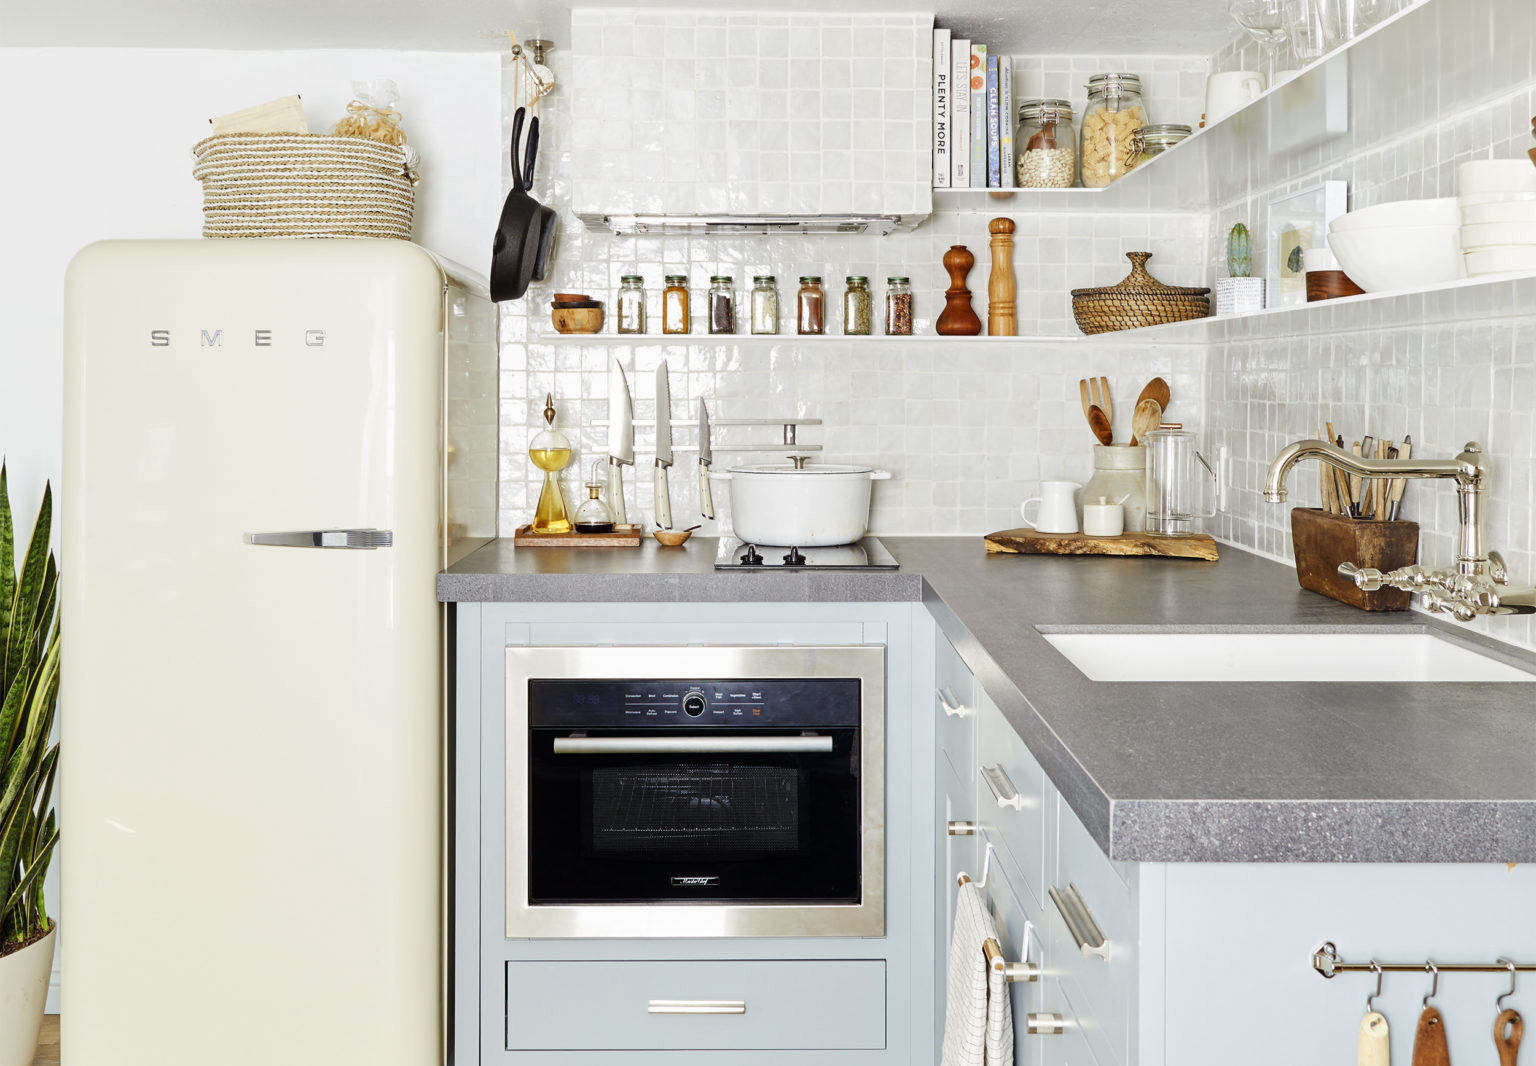 Supersized Storage in a Tiny Kitchen: 7 Game-Changing Aha! Hacks